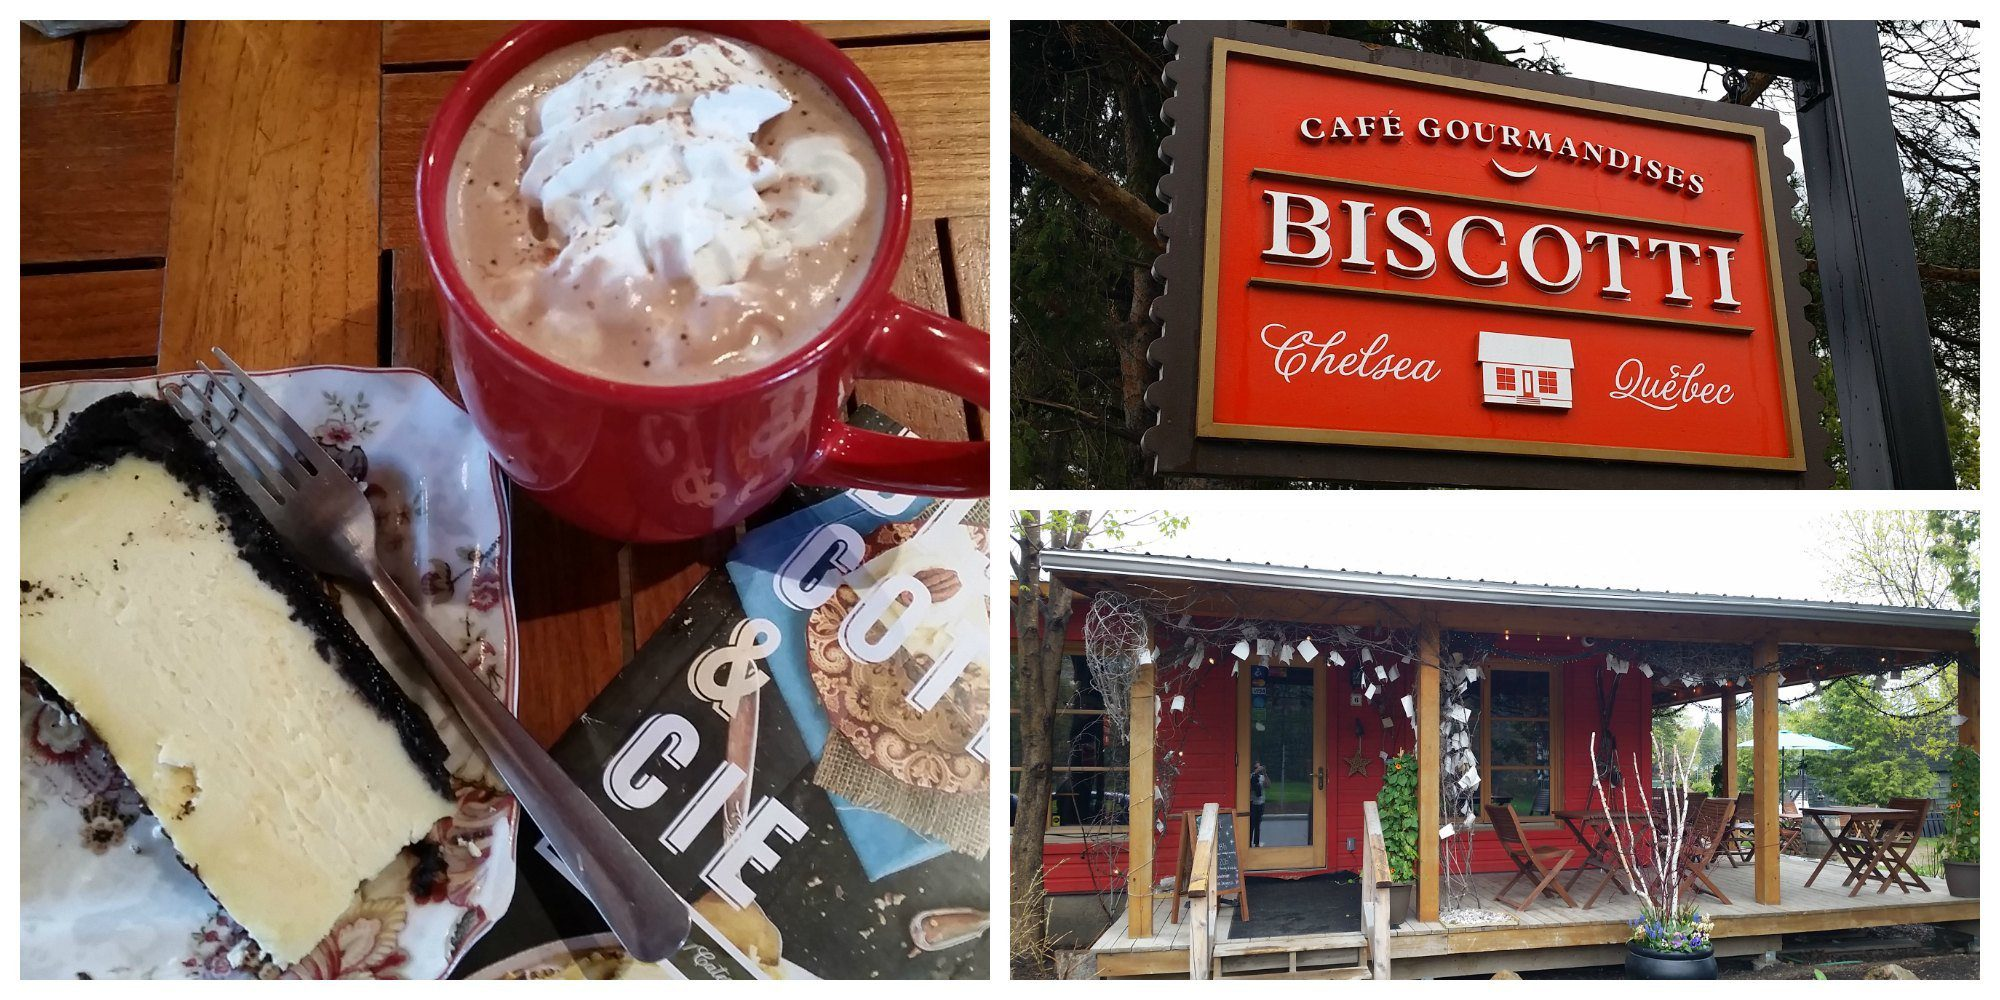 Biscotti Cafe Delights in Chelsea, Canada